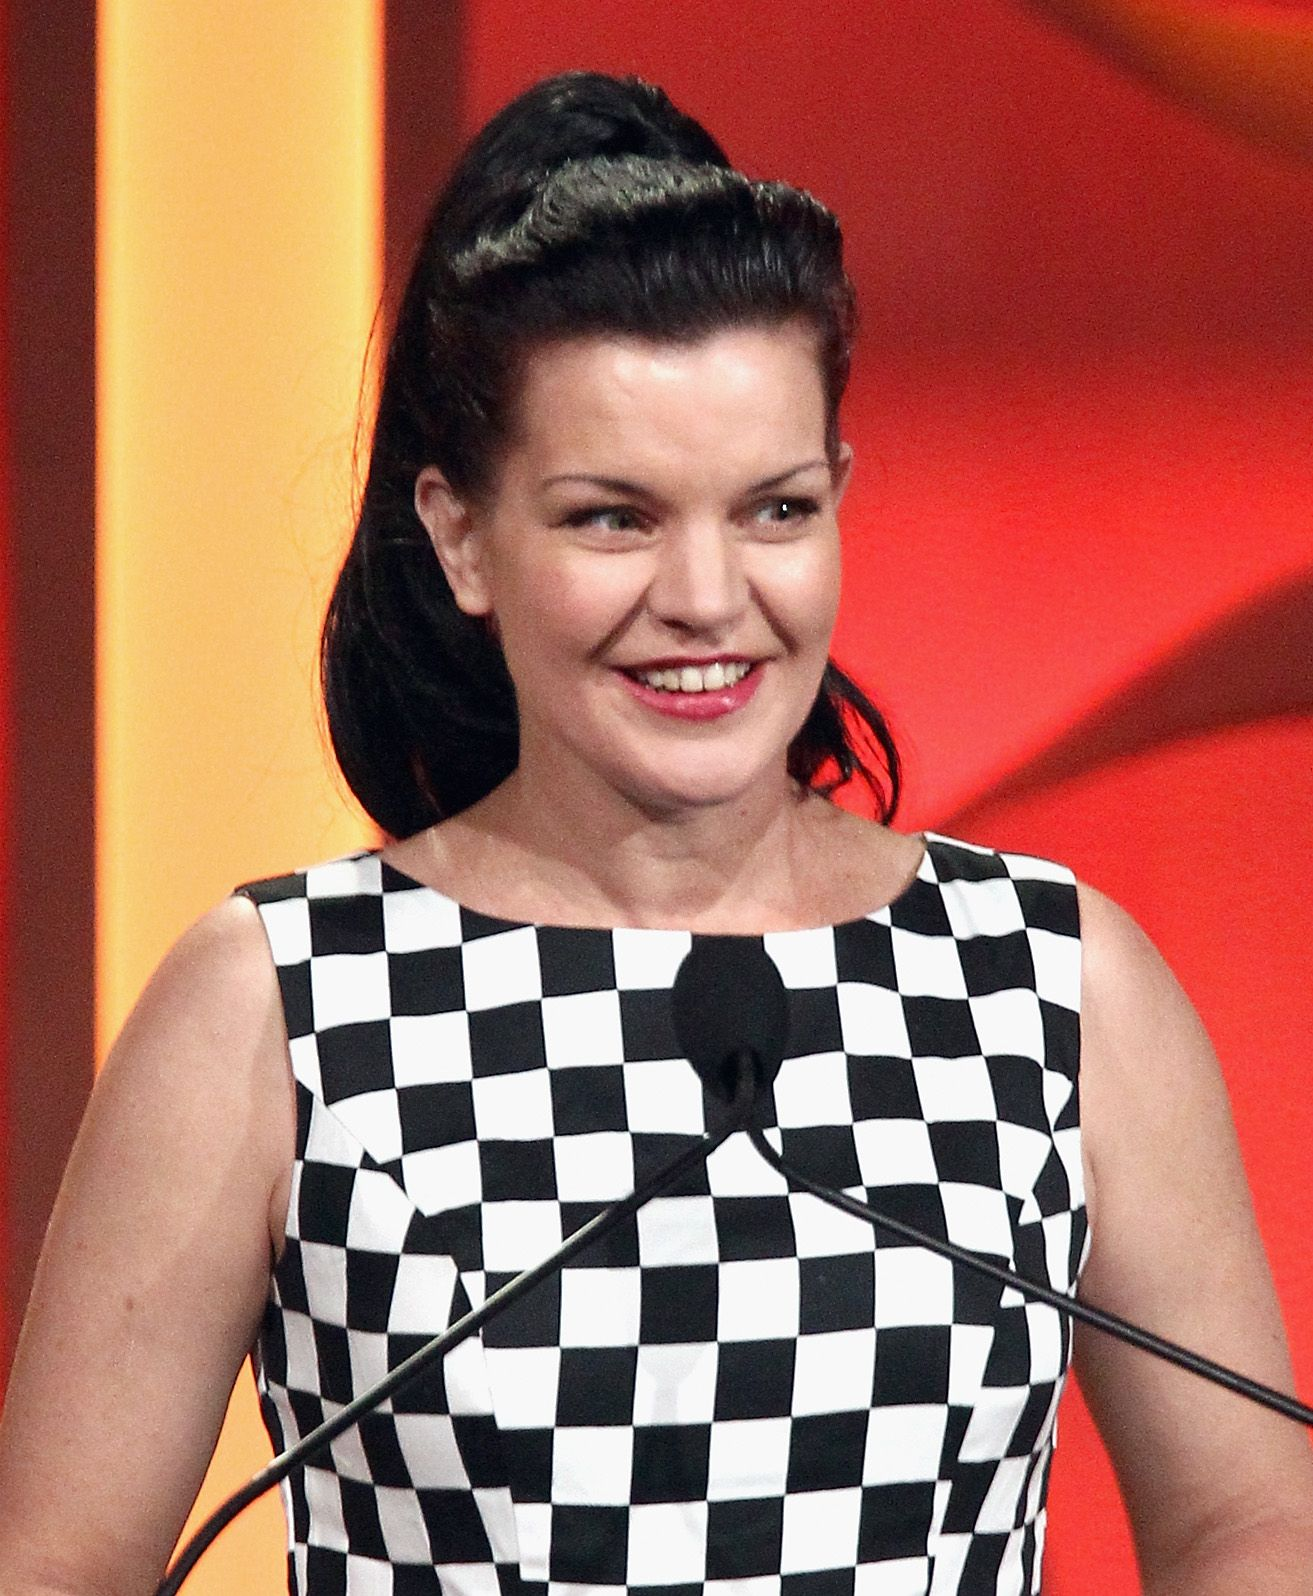 Pauley Perrette during The Trevor Project's 2016 TrevorLIVE LA at The Beverly Hilton Hotel on December 4, 2016 in Beverly Hills, California. | Source: Getty Images